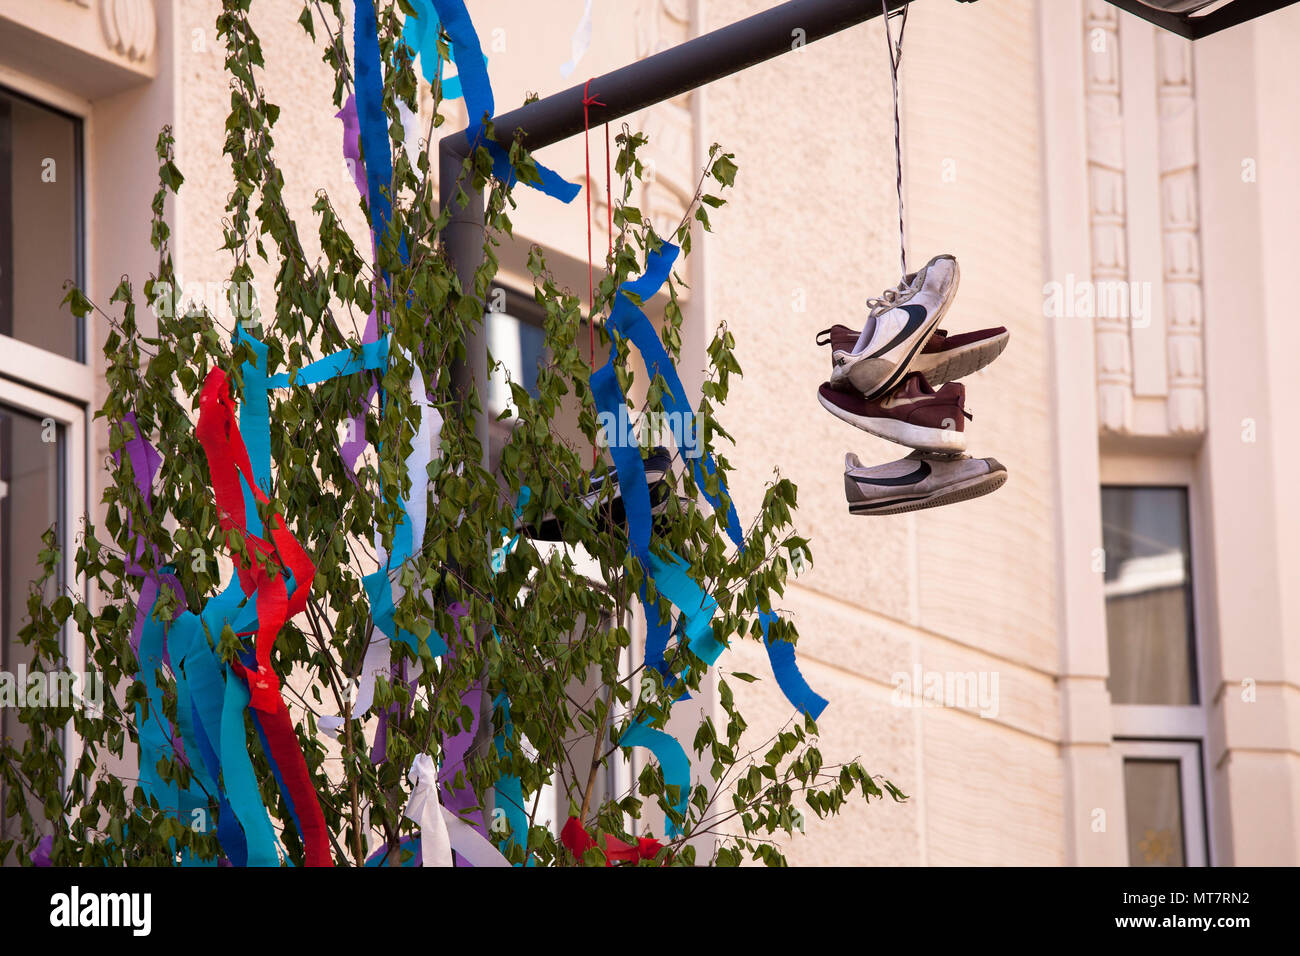 Straßenlaterne Köln Schuhe Stock Photos And Schuhe Stock Images Alamy